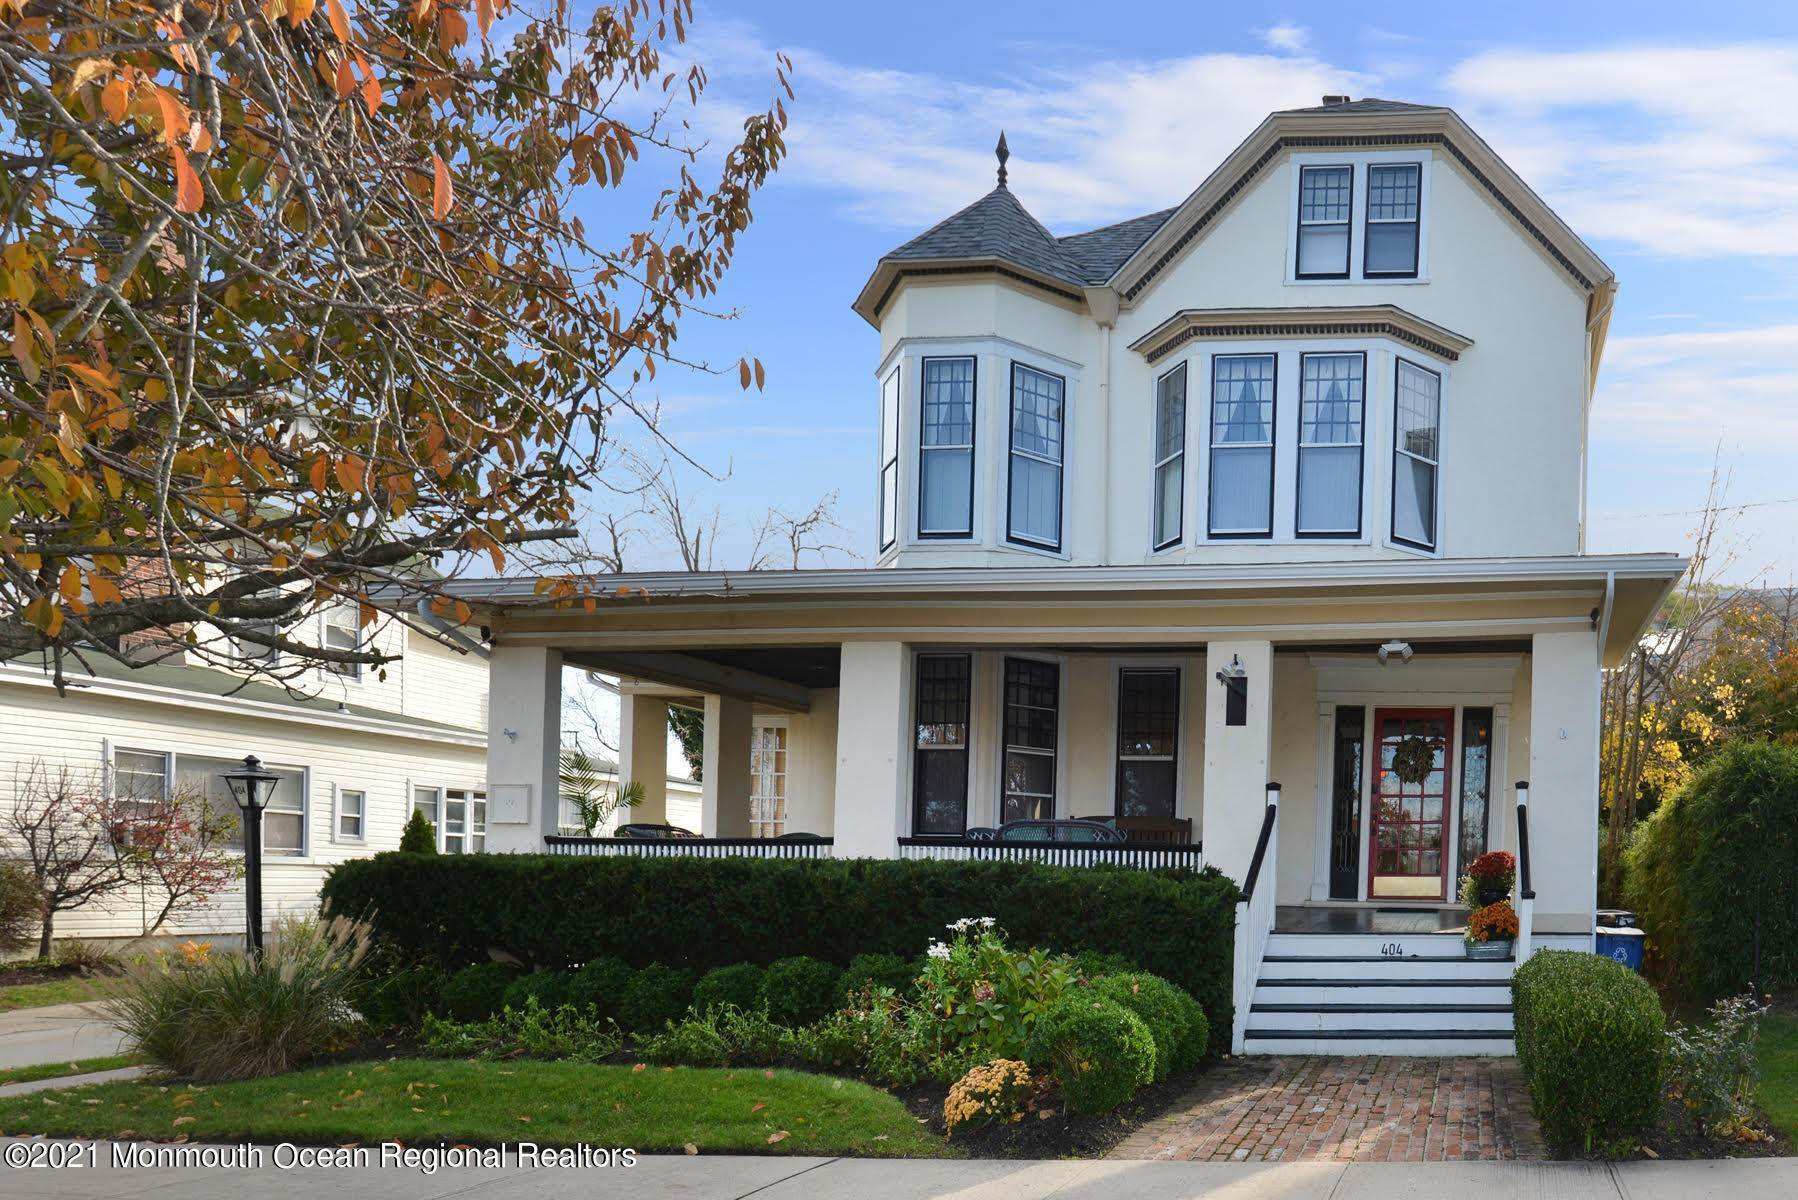 Single Family Home for Rent at 404 Asbury Avenue Asbury Park, New Jersey, 07712 United States